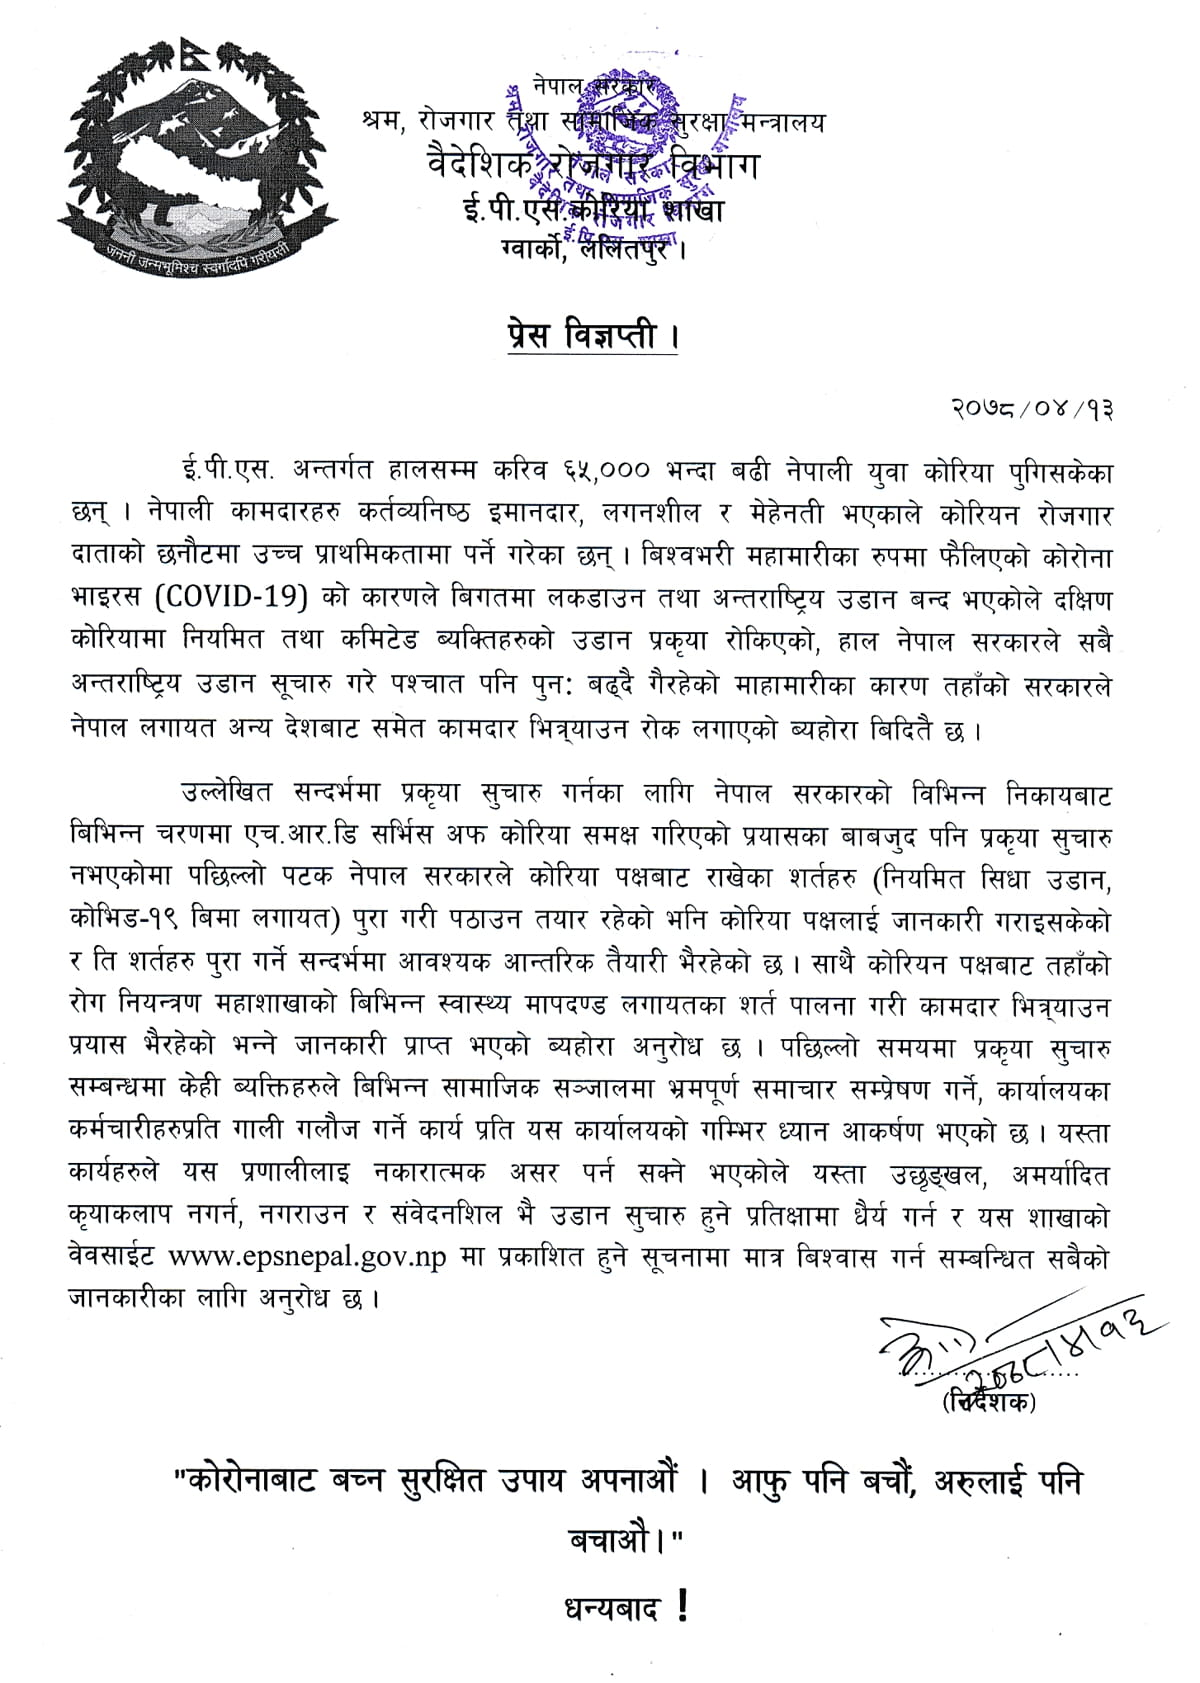 EPS Nepal Press Release on Resume of EPS Process